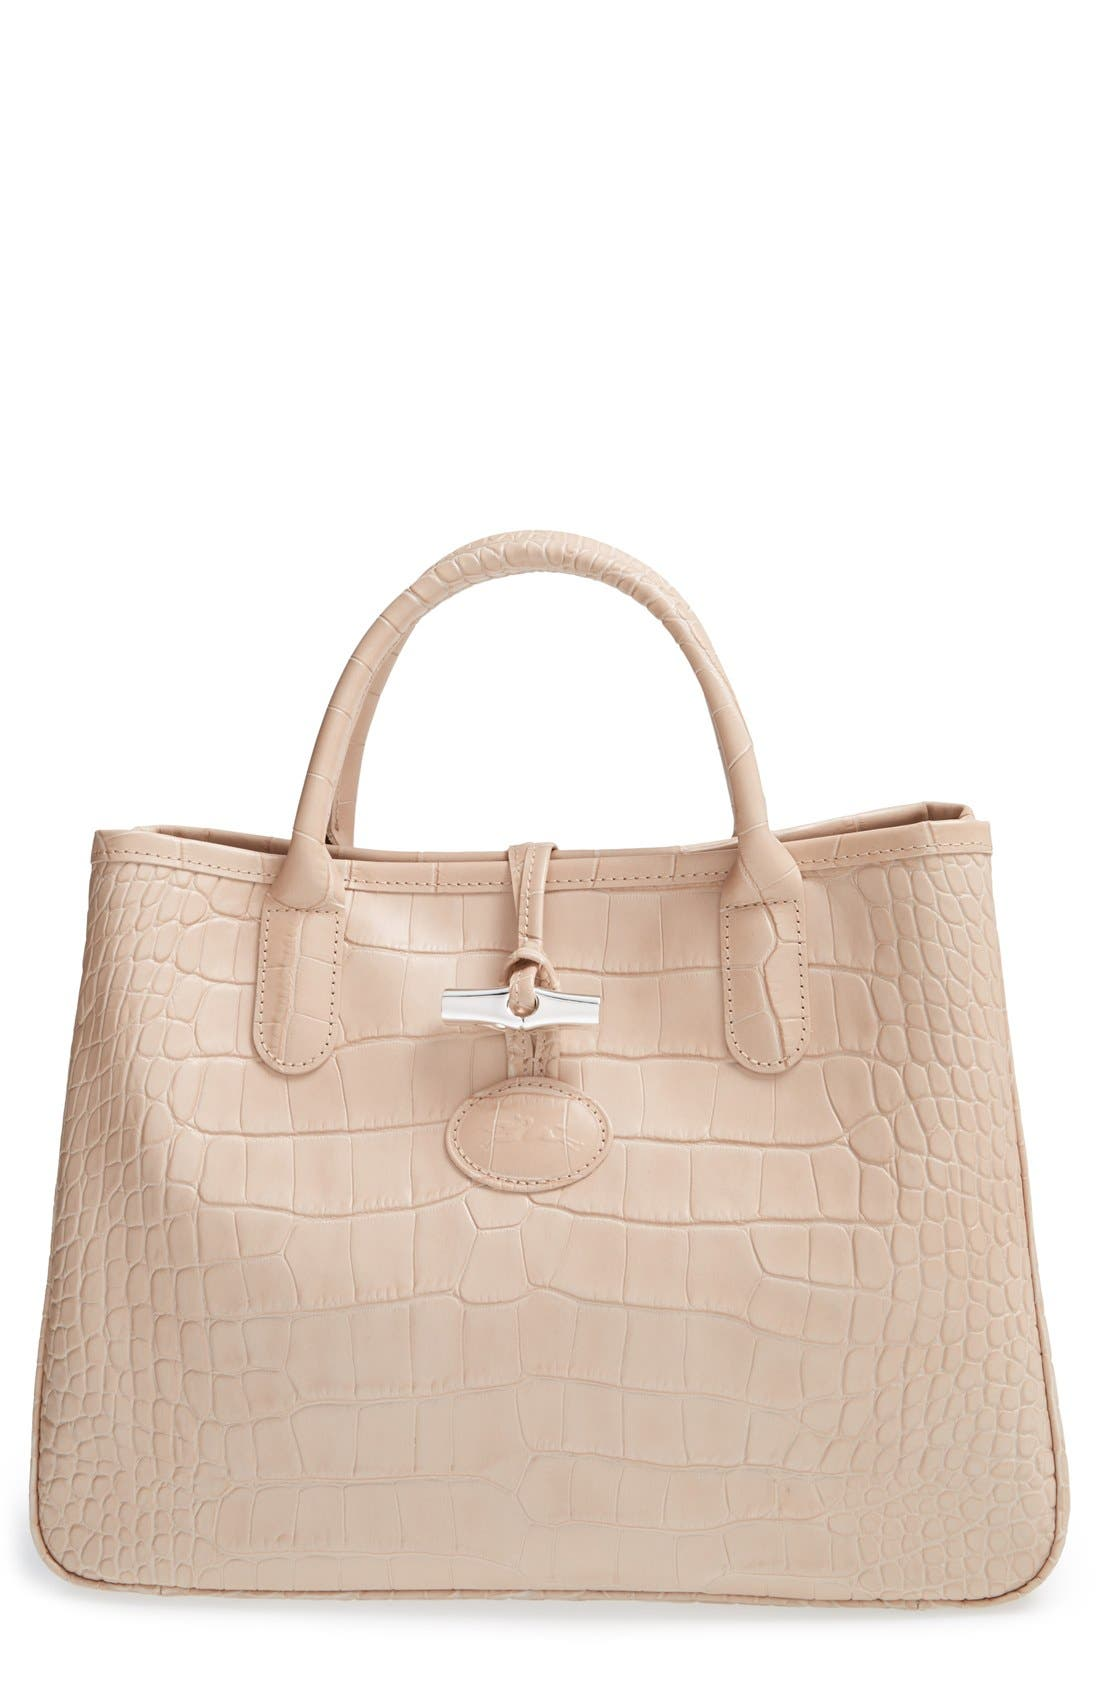 Alternate Image 1 Selected - Longchamp 'Small Roseau Croco' Shoulder Tote